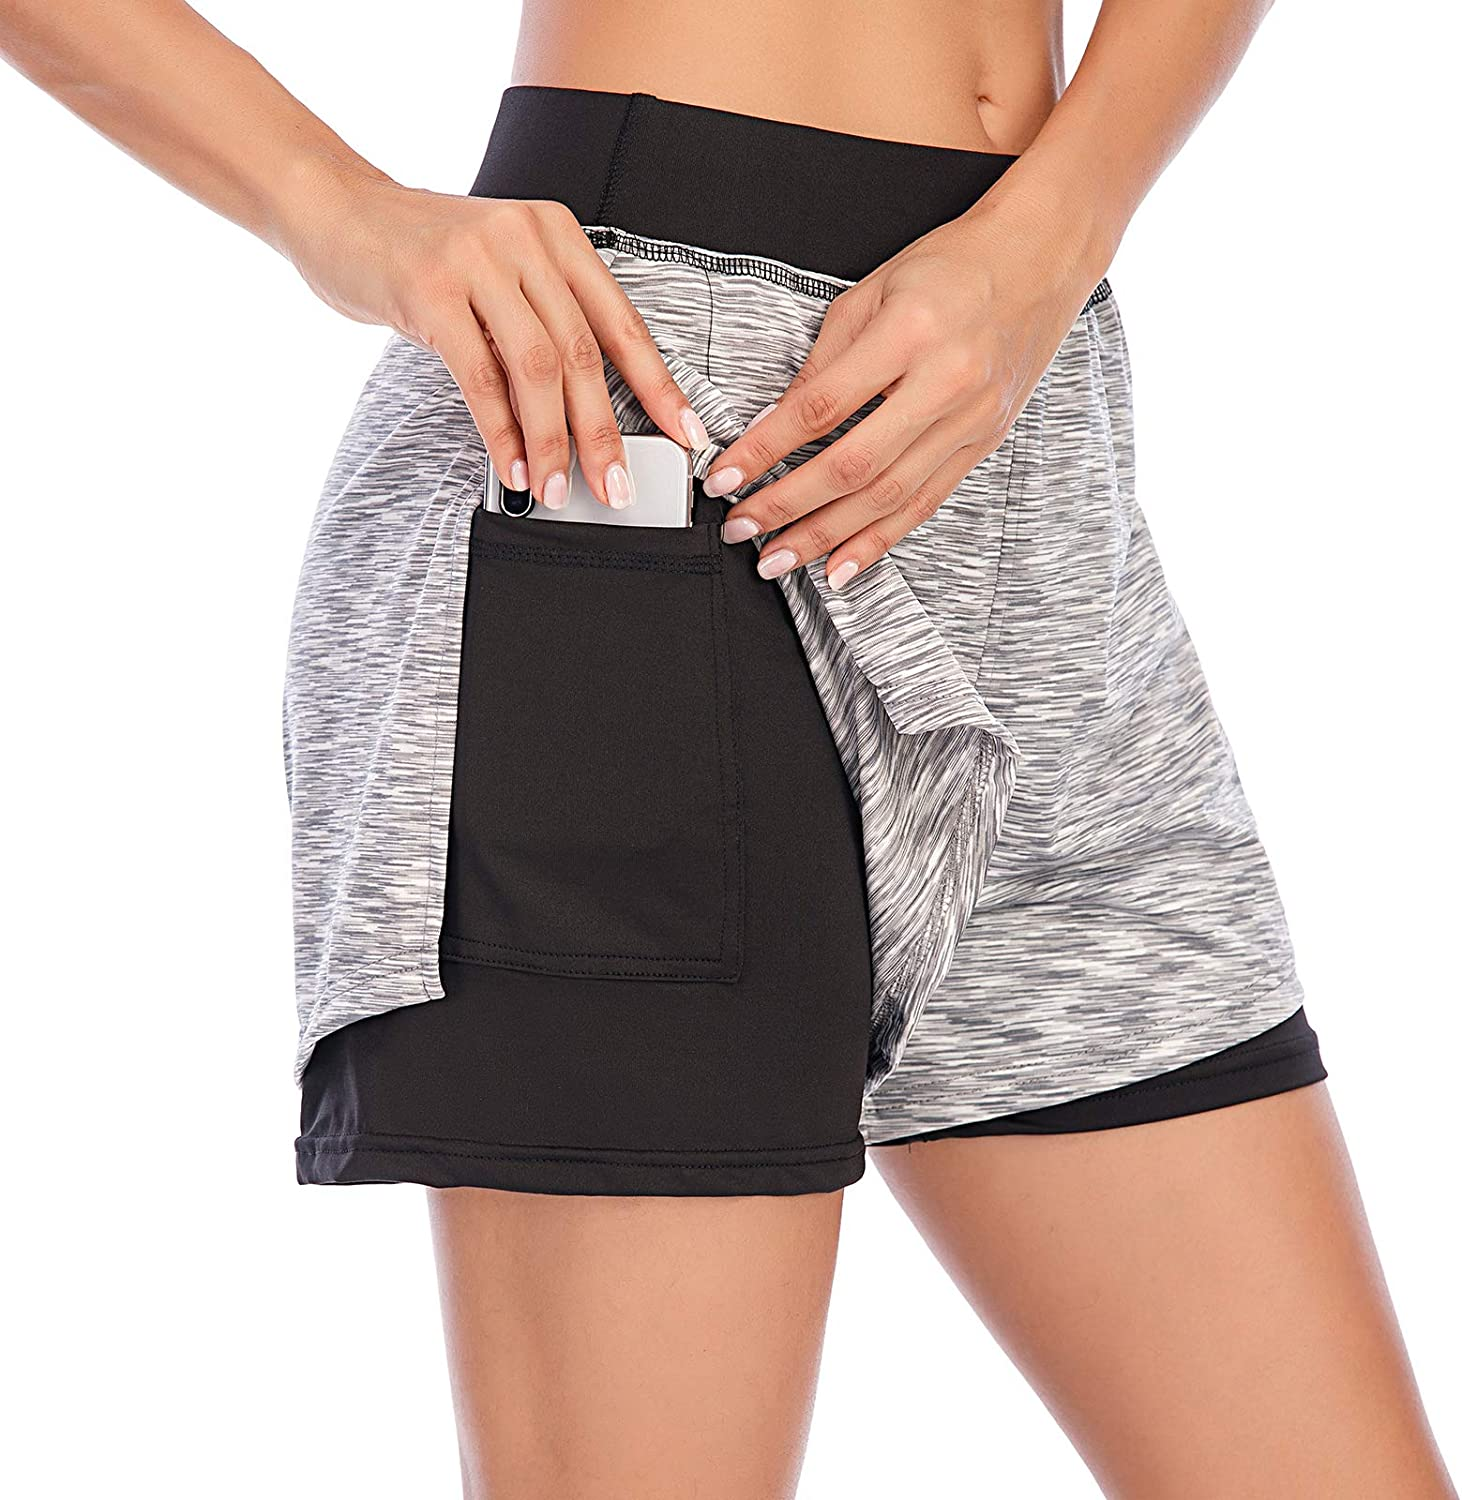 PP PLUIE POURPRE Athletic Shorts for in 2 Cheap mail order specialty store 1 Workout mart Runnin Women